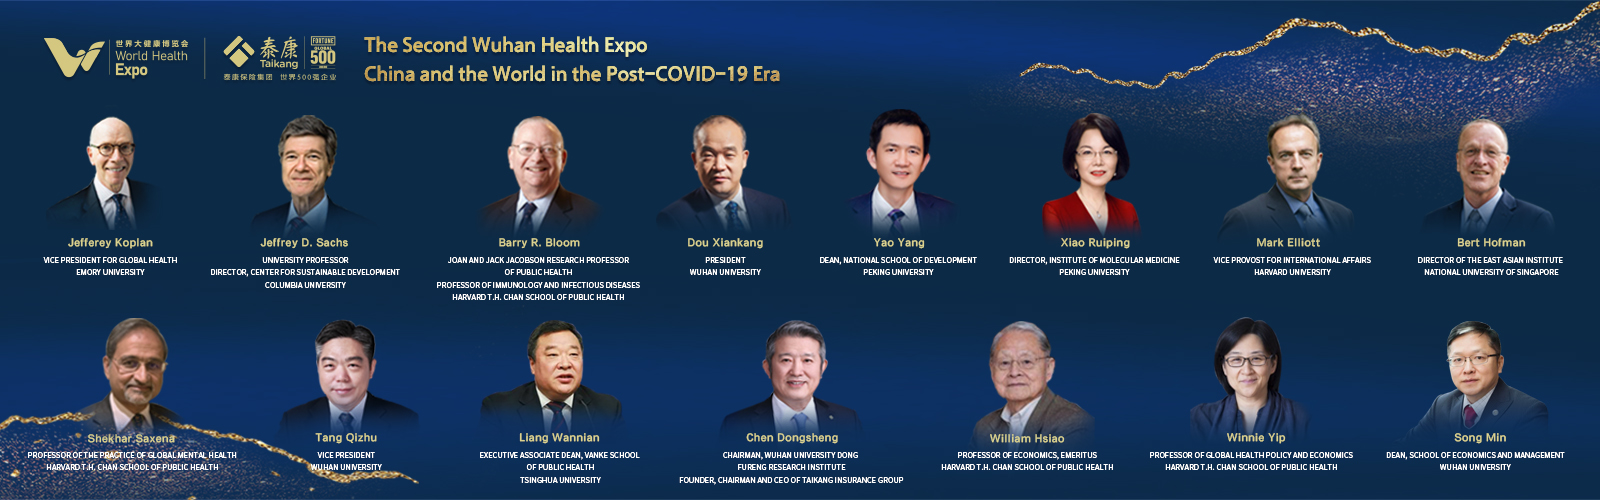 China and Global Experience with COVID-19